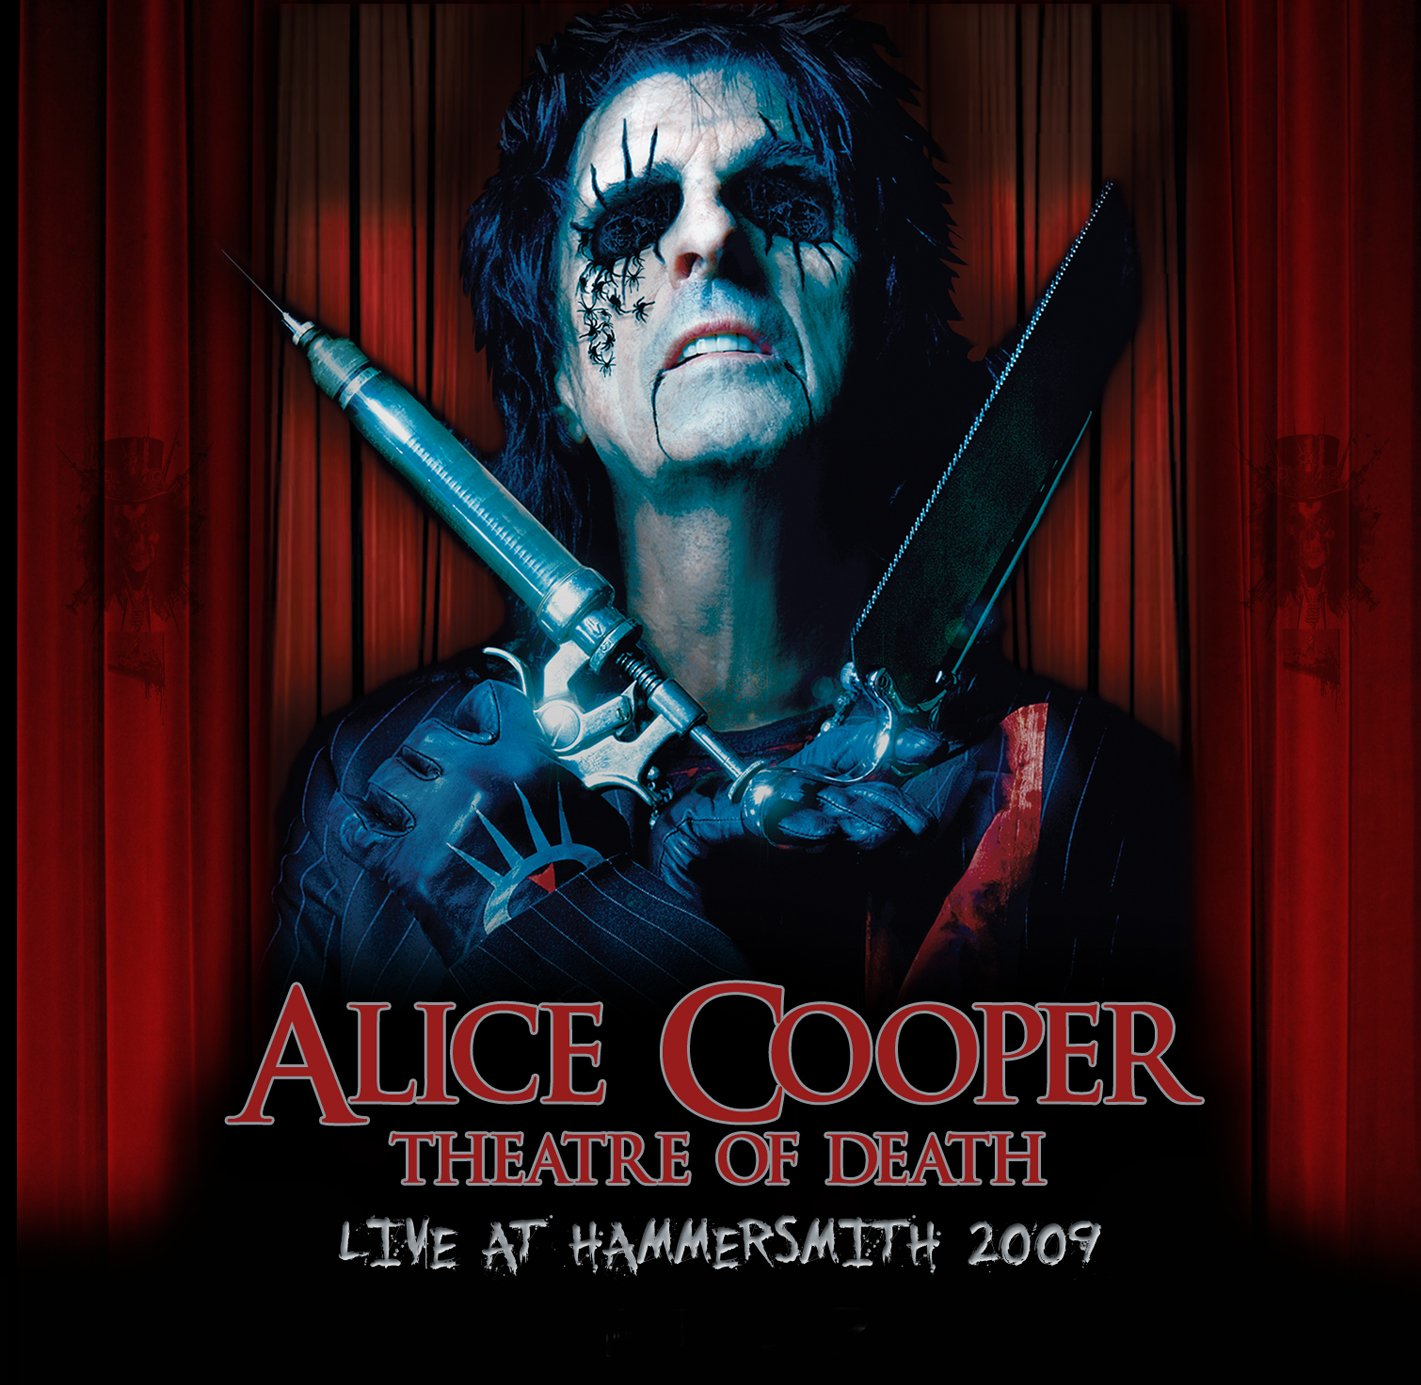 Theatre Of Death - Live At Hammersmith 2009 (CD/DVD)